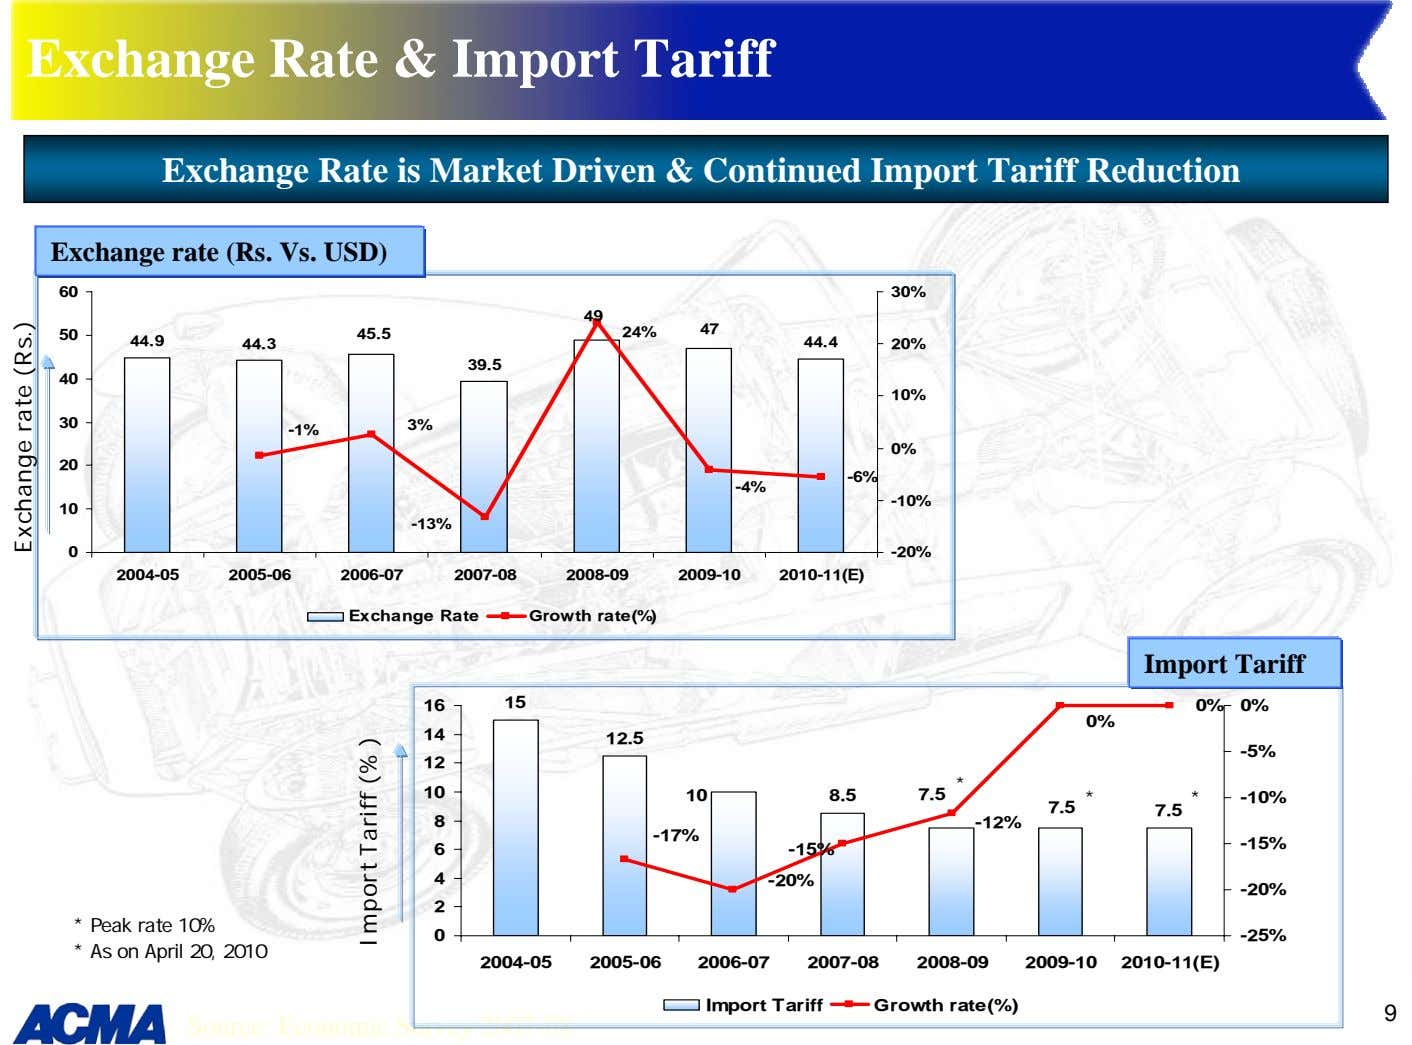 Exchange Rate & Import Tariff Exchange Rate is Market Driven & Continued Import Tariff Reduction